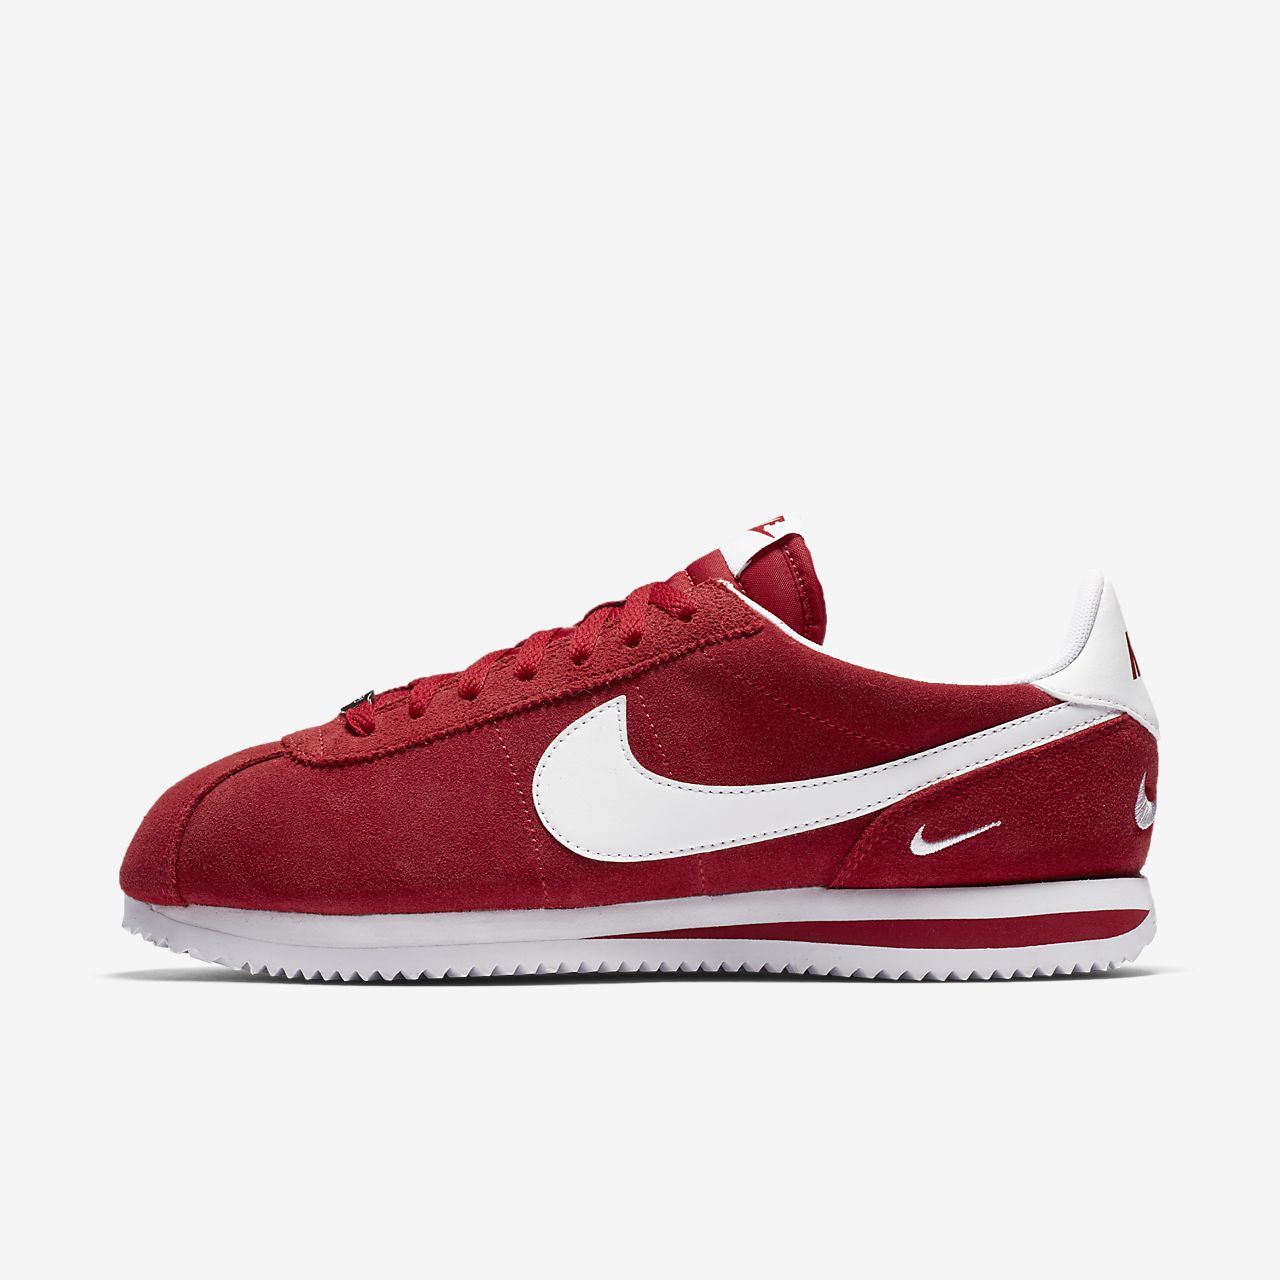 cdf275e3 spain nike cortez red white blue 497bf c7b17